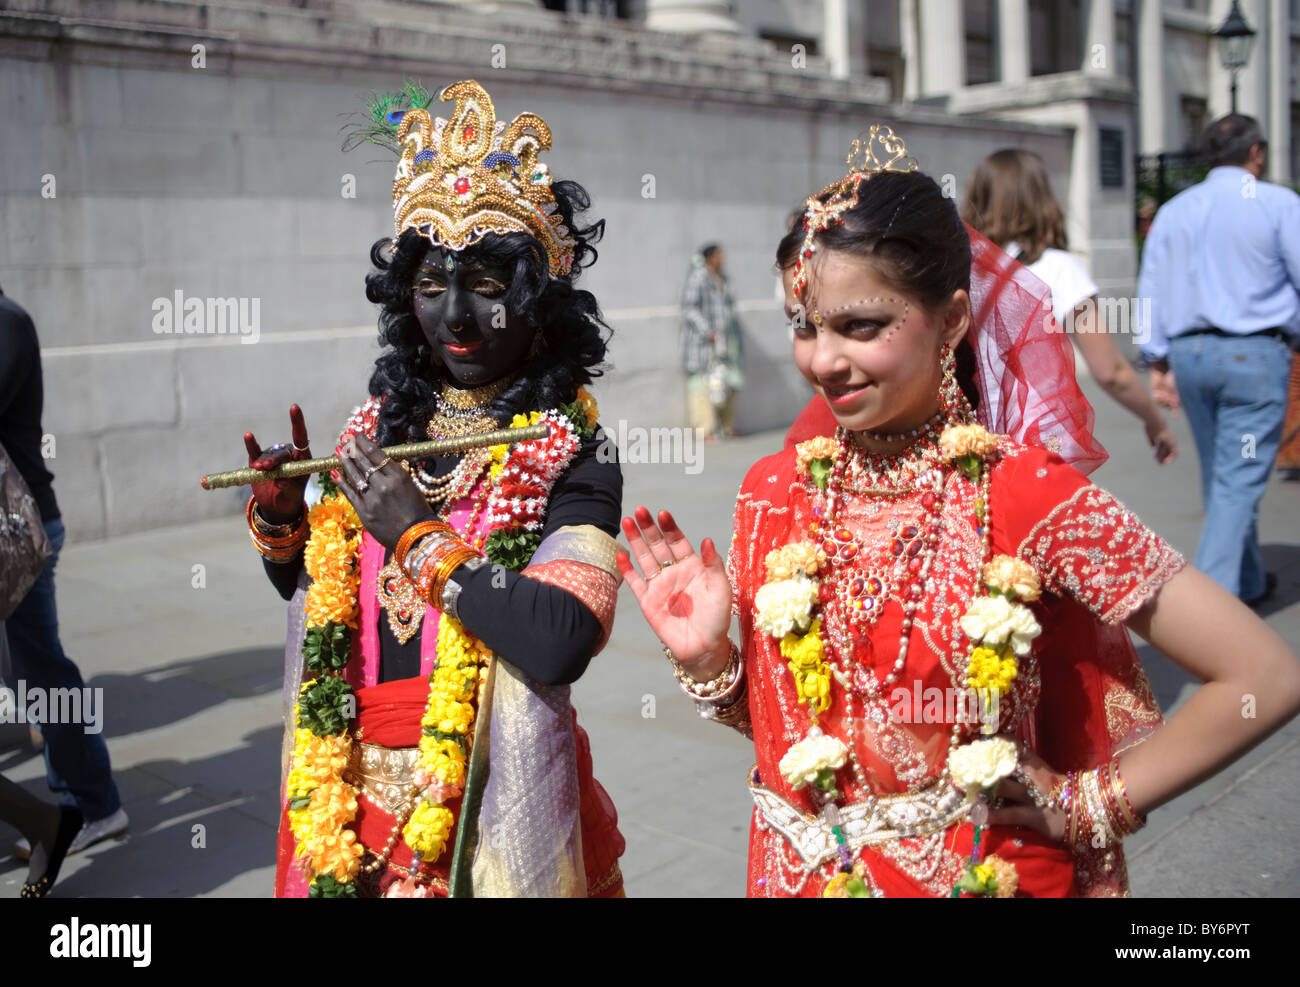 Young girls dressed as Indian Deities during Hindu Festival of Chariots,Trafalgar Square,London 2010 - Stock Image